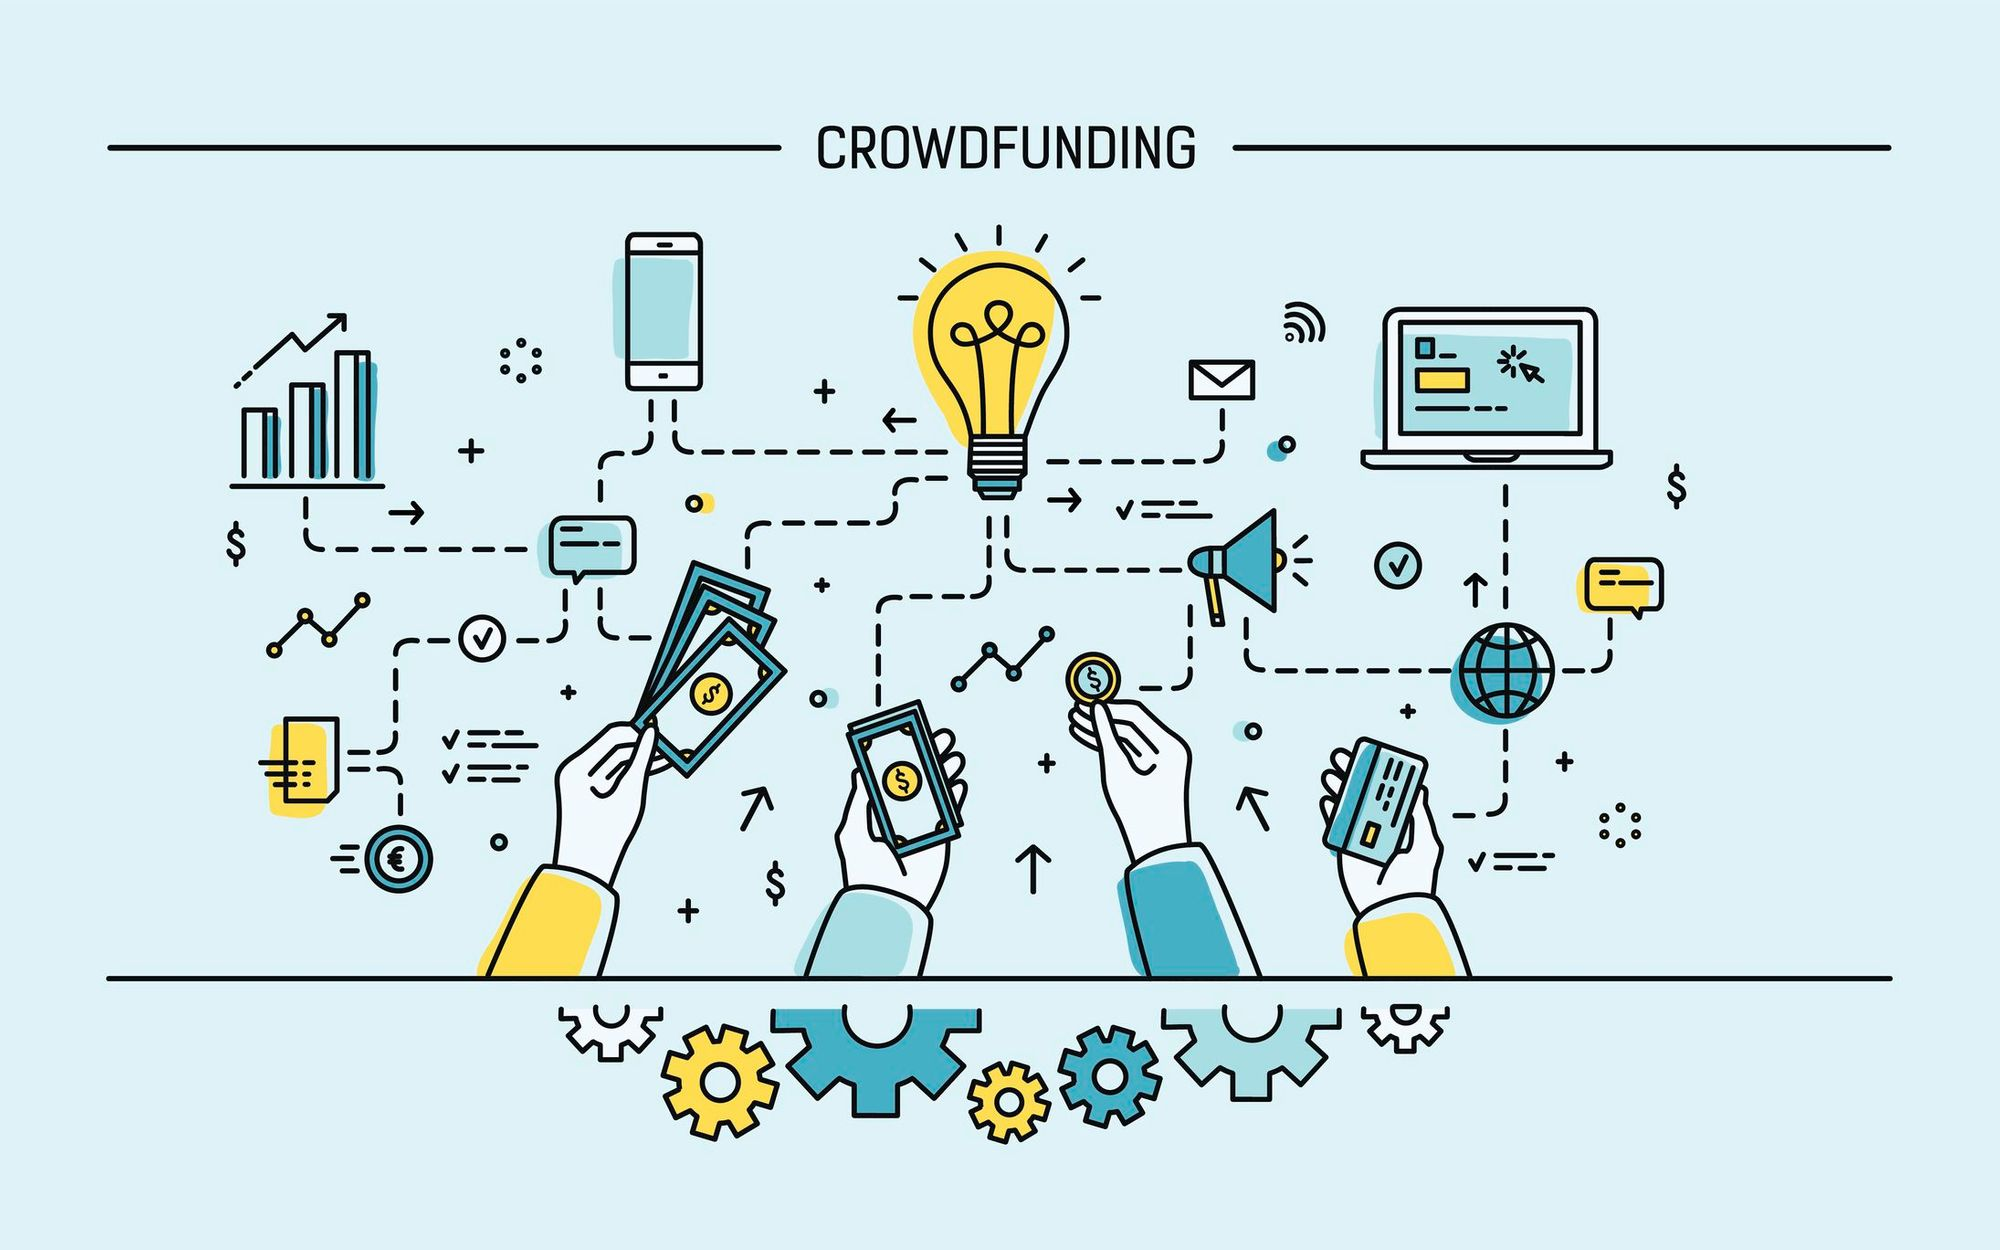 Crowdfunding tips that help after launching the campaign